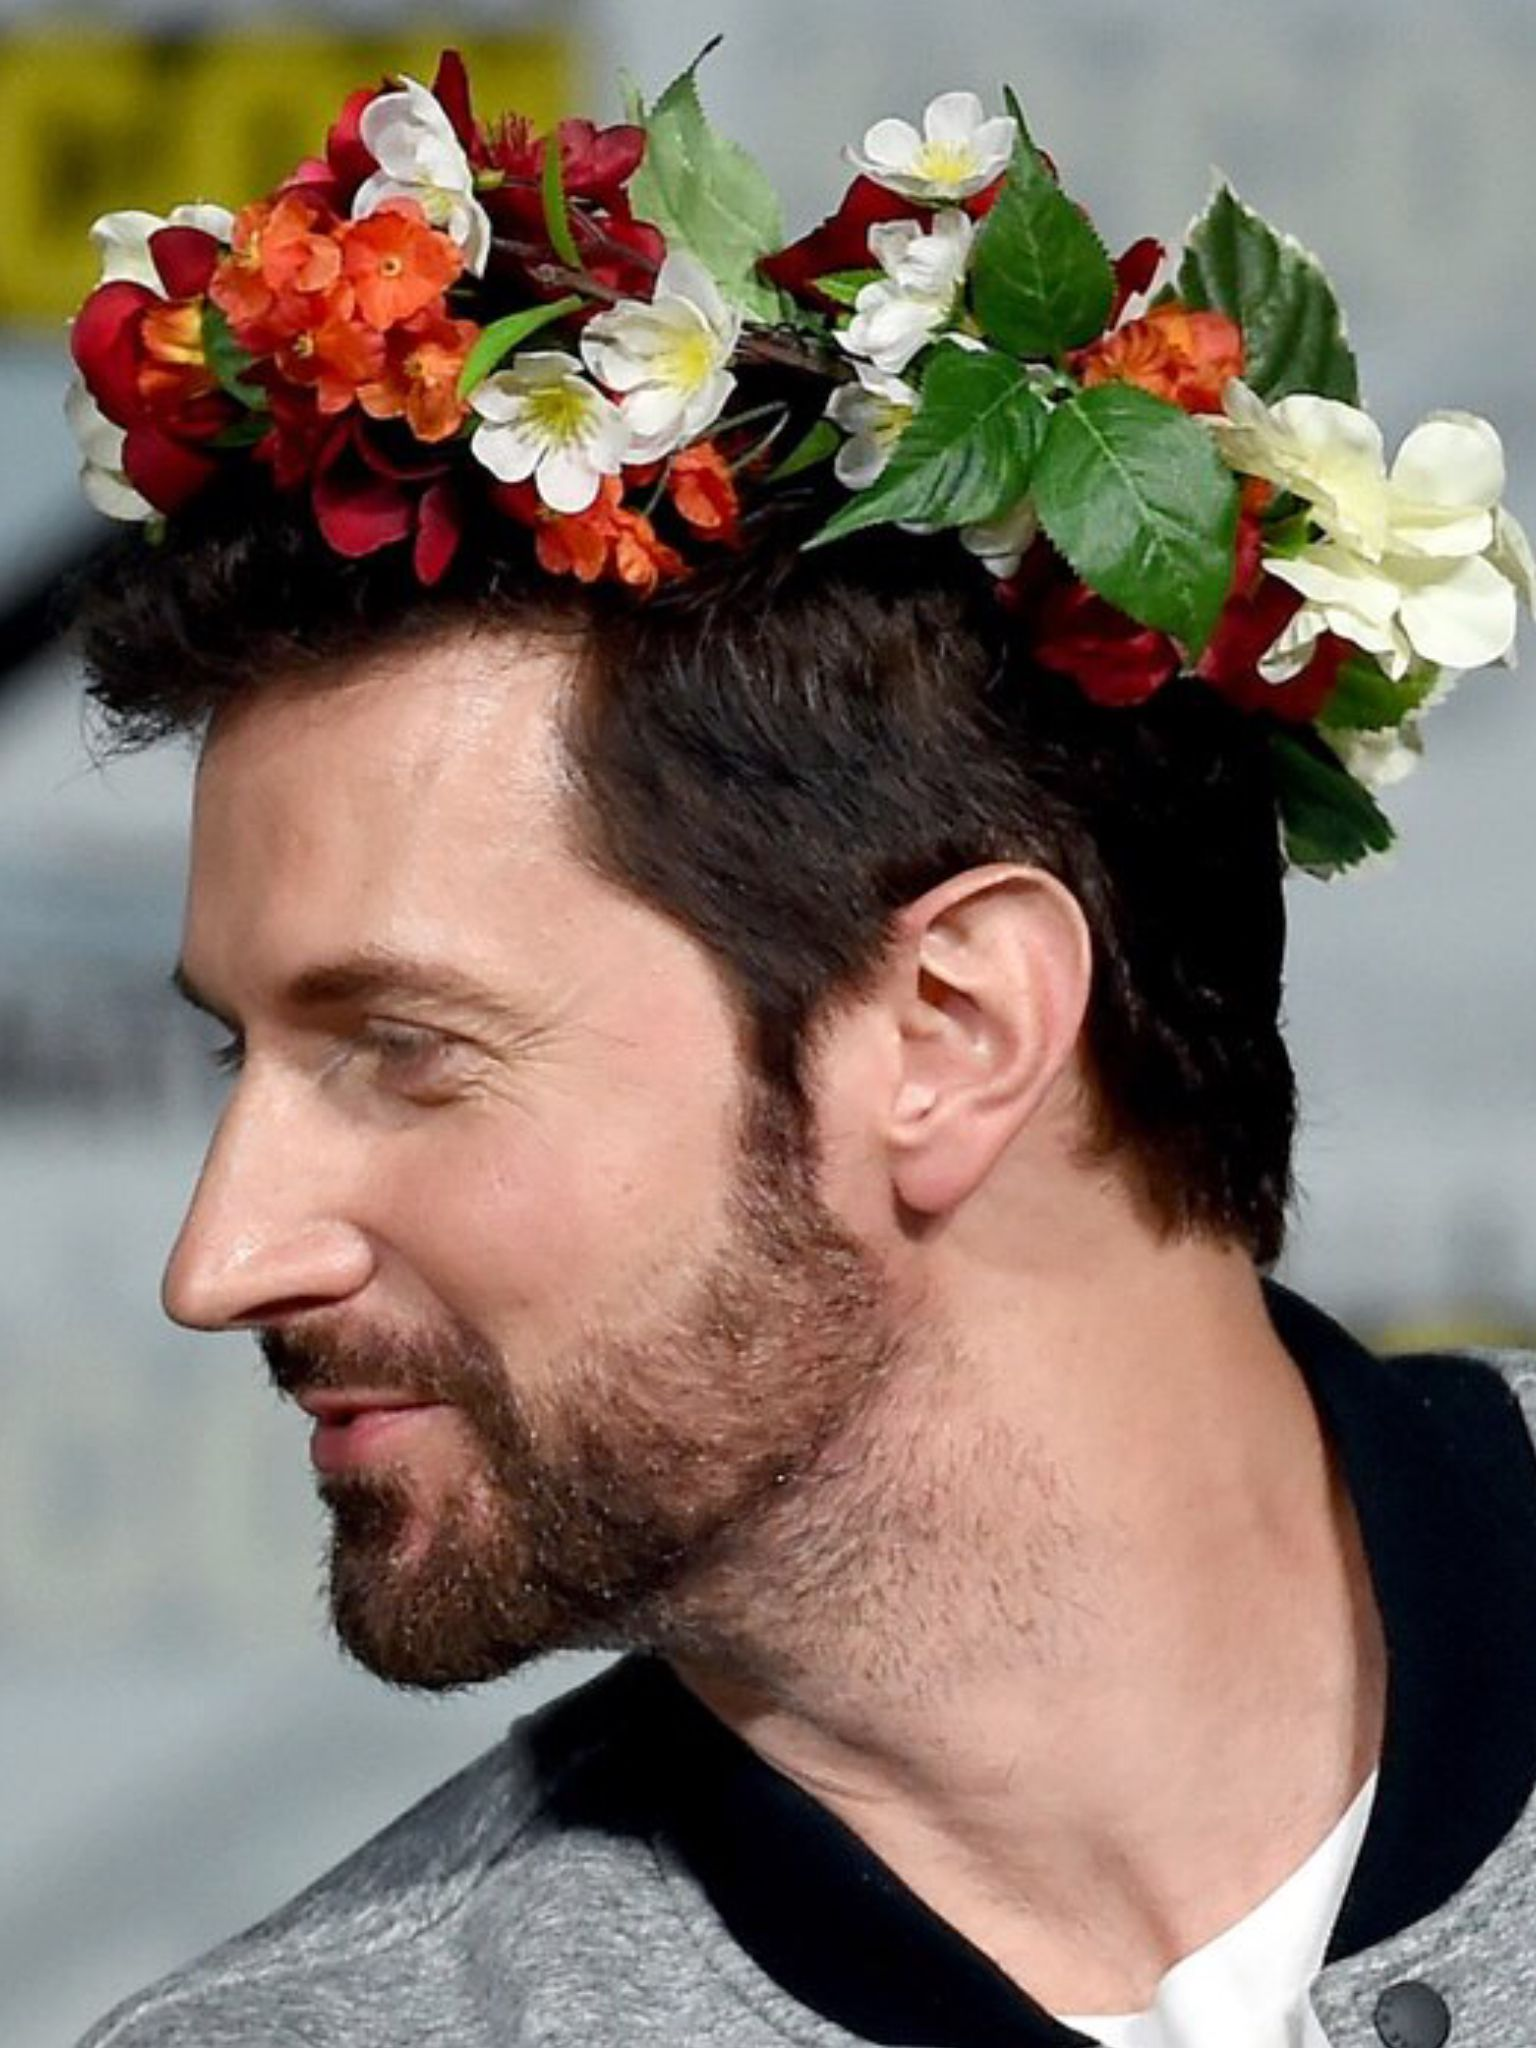 Ra With Hannibal Flower Crown At Sdcc 2015 Hannibal Pinterest